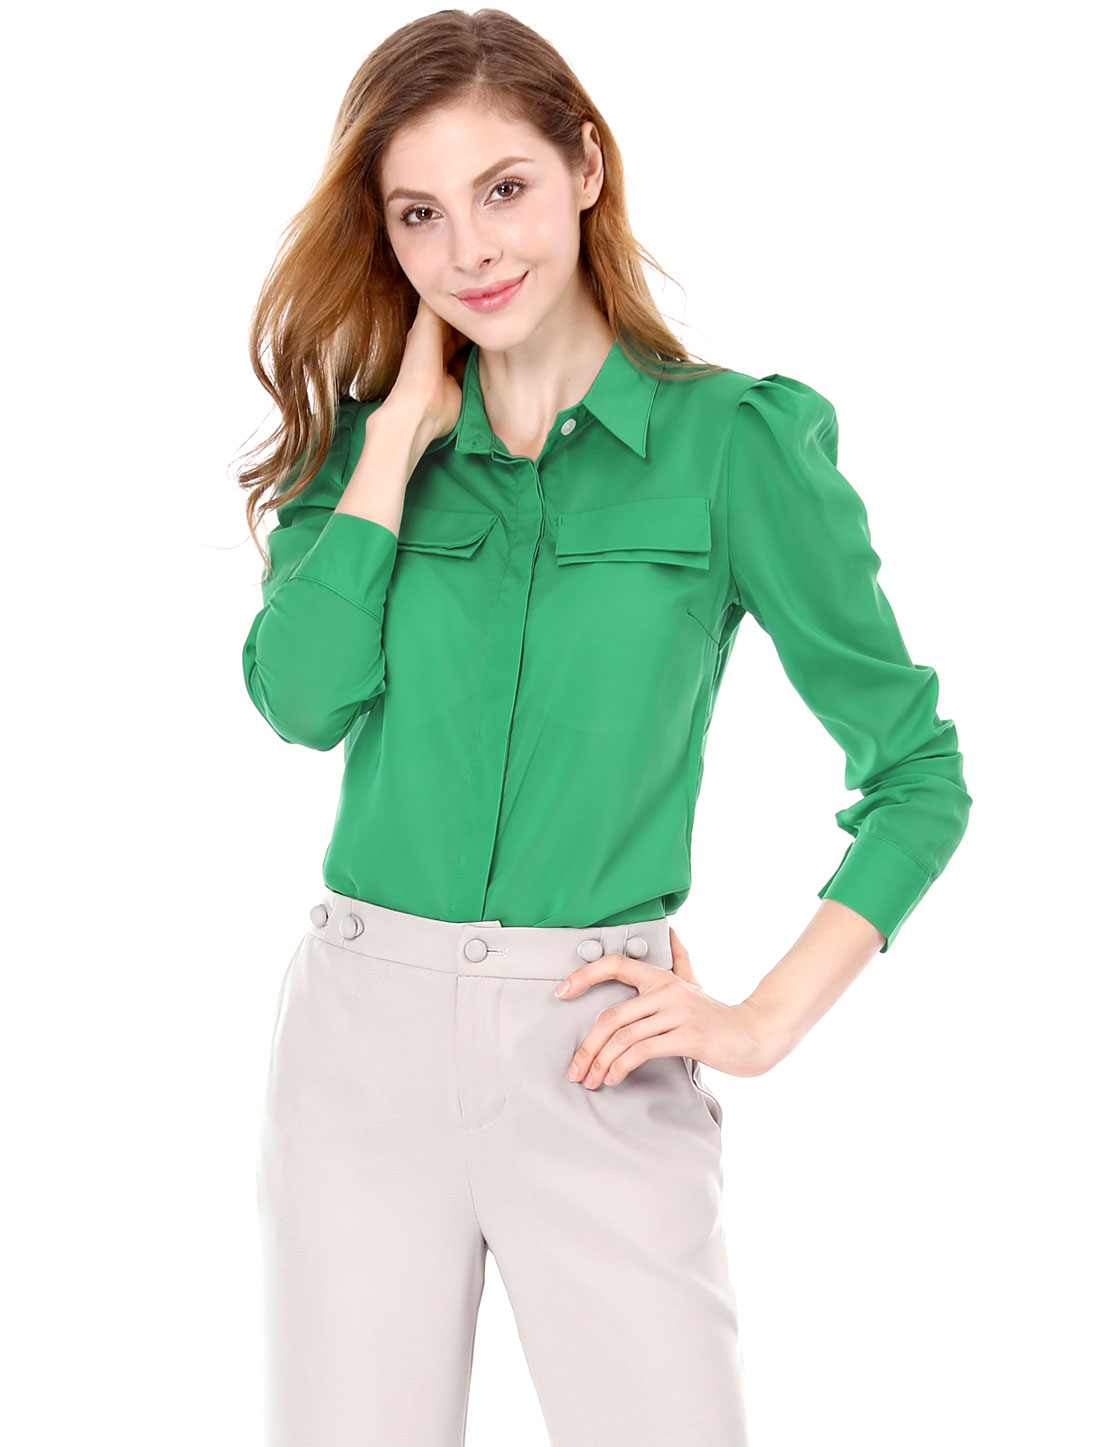 Woman NEW Point Collar Long Sleeve Pure Green Button Down Shirt S